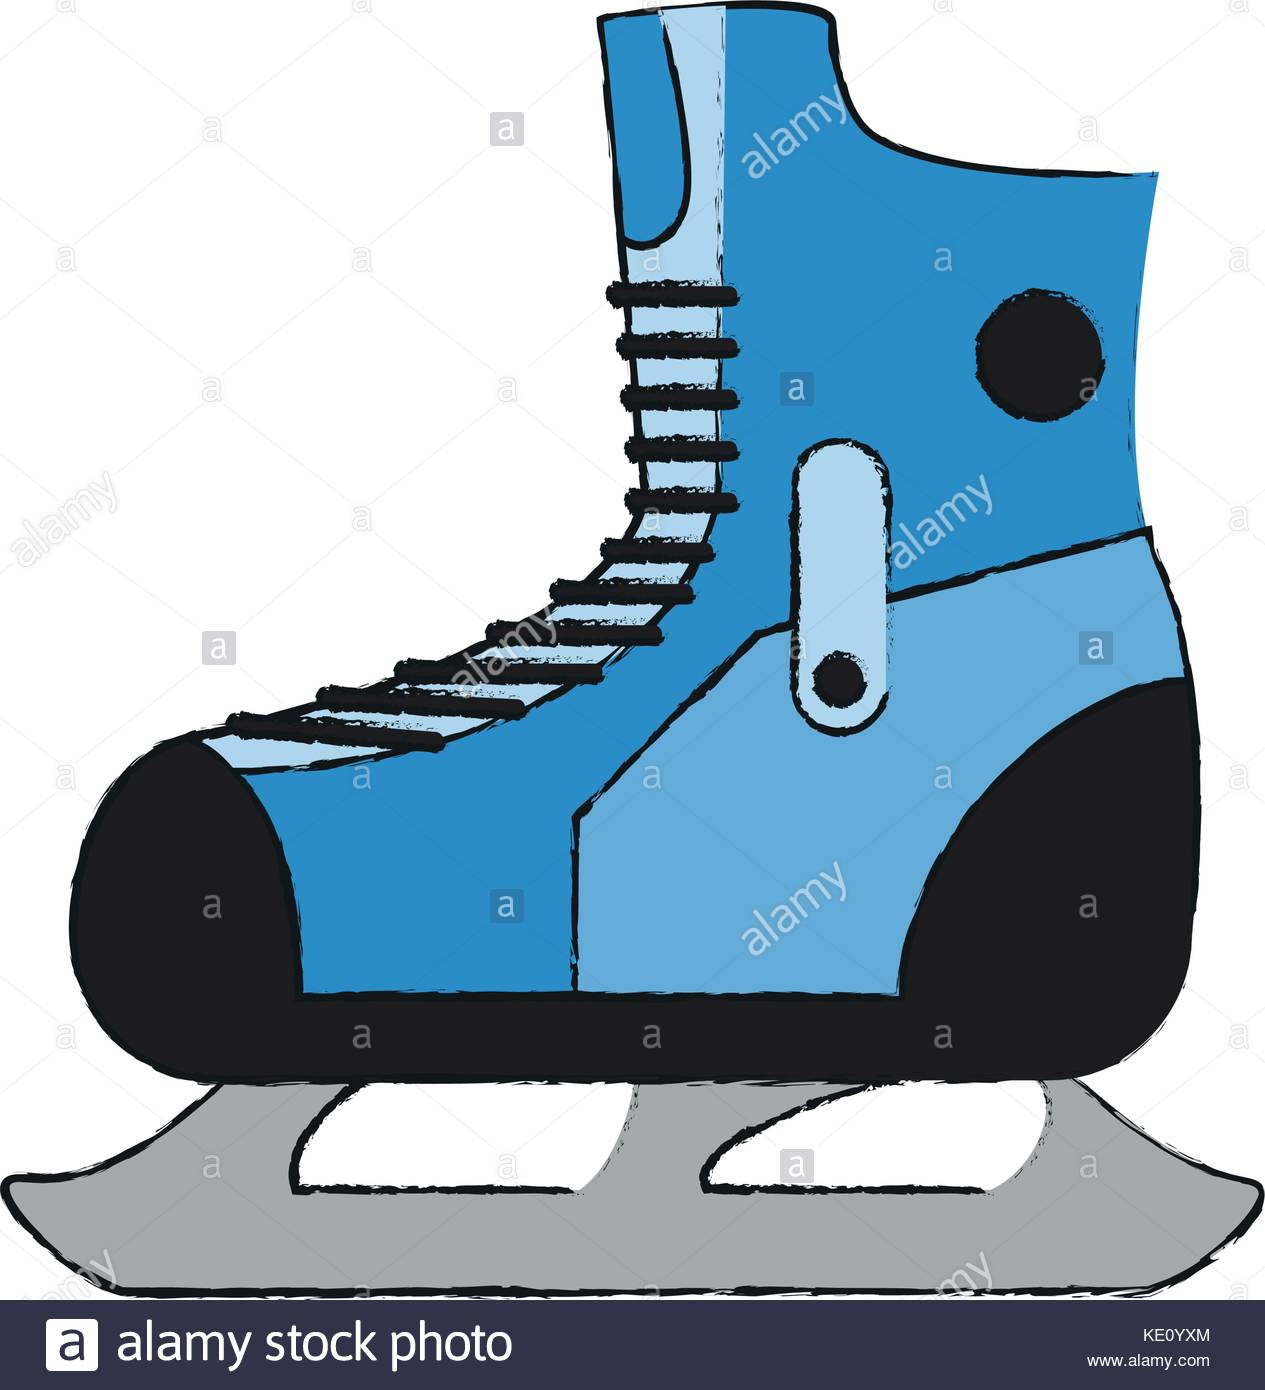 1265x1390 Old Ice Skates, Isolated Stock Photos Amp Old Ice Skates, Isolated